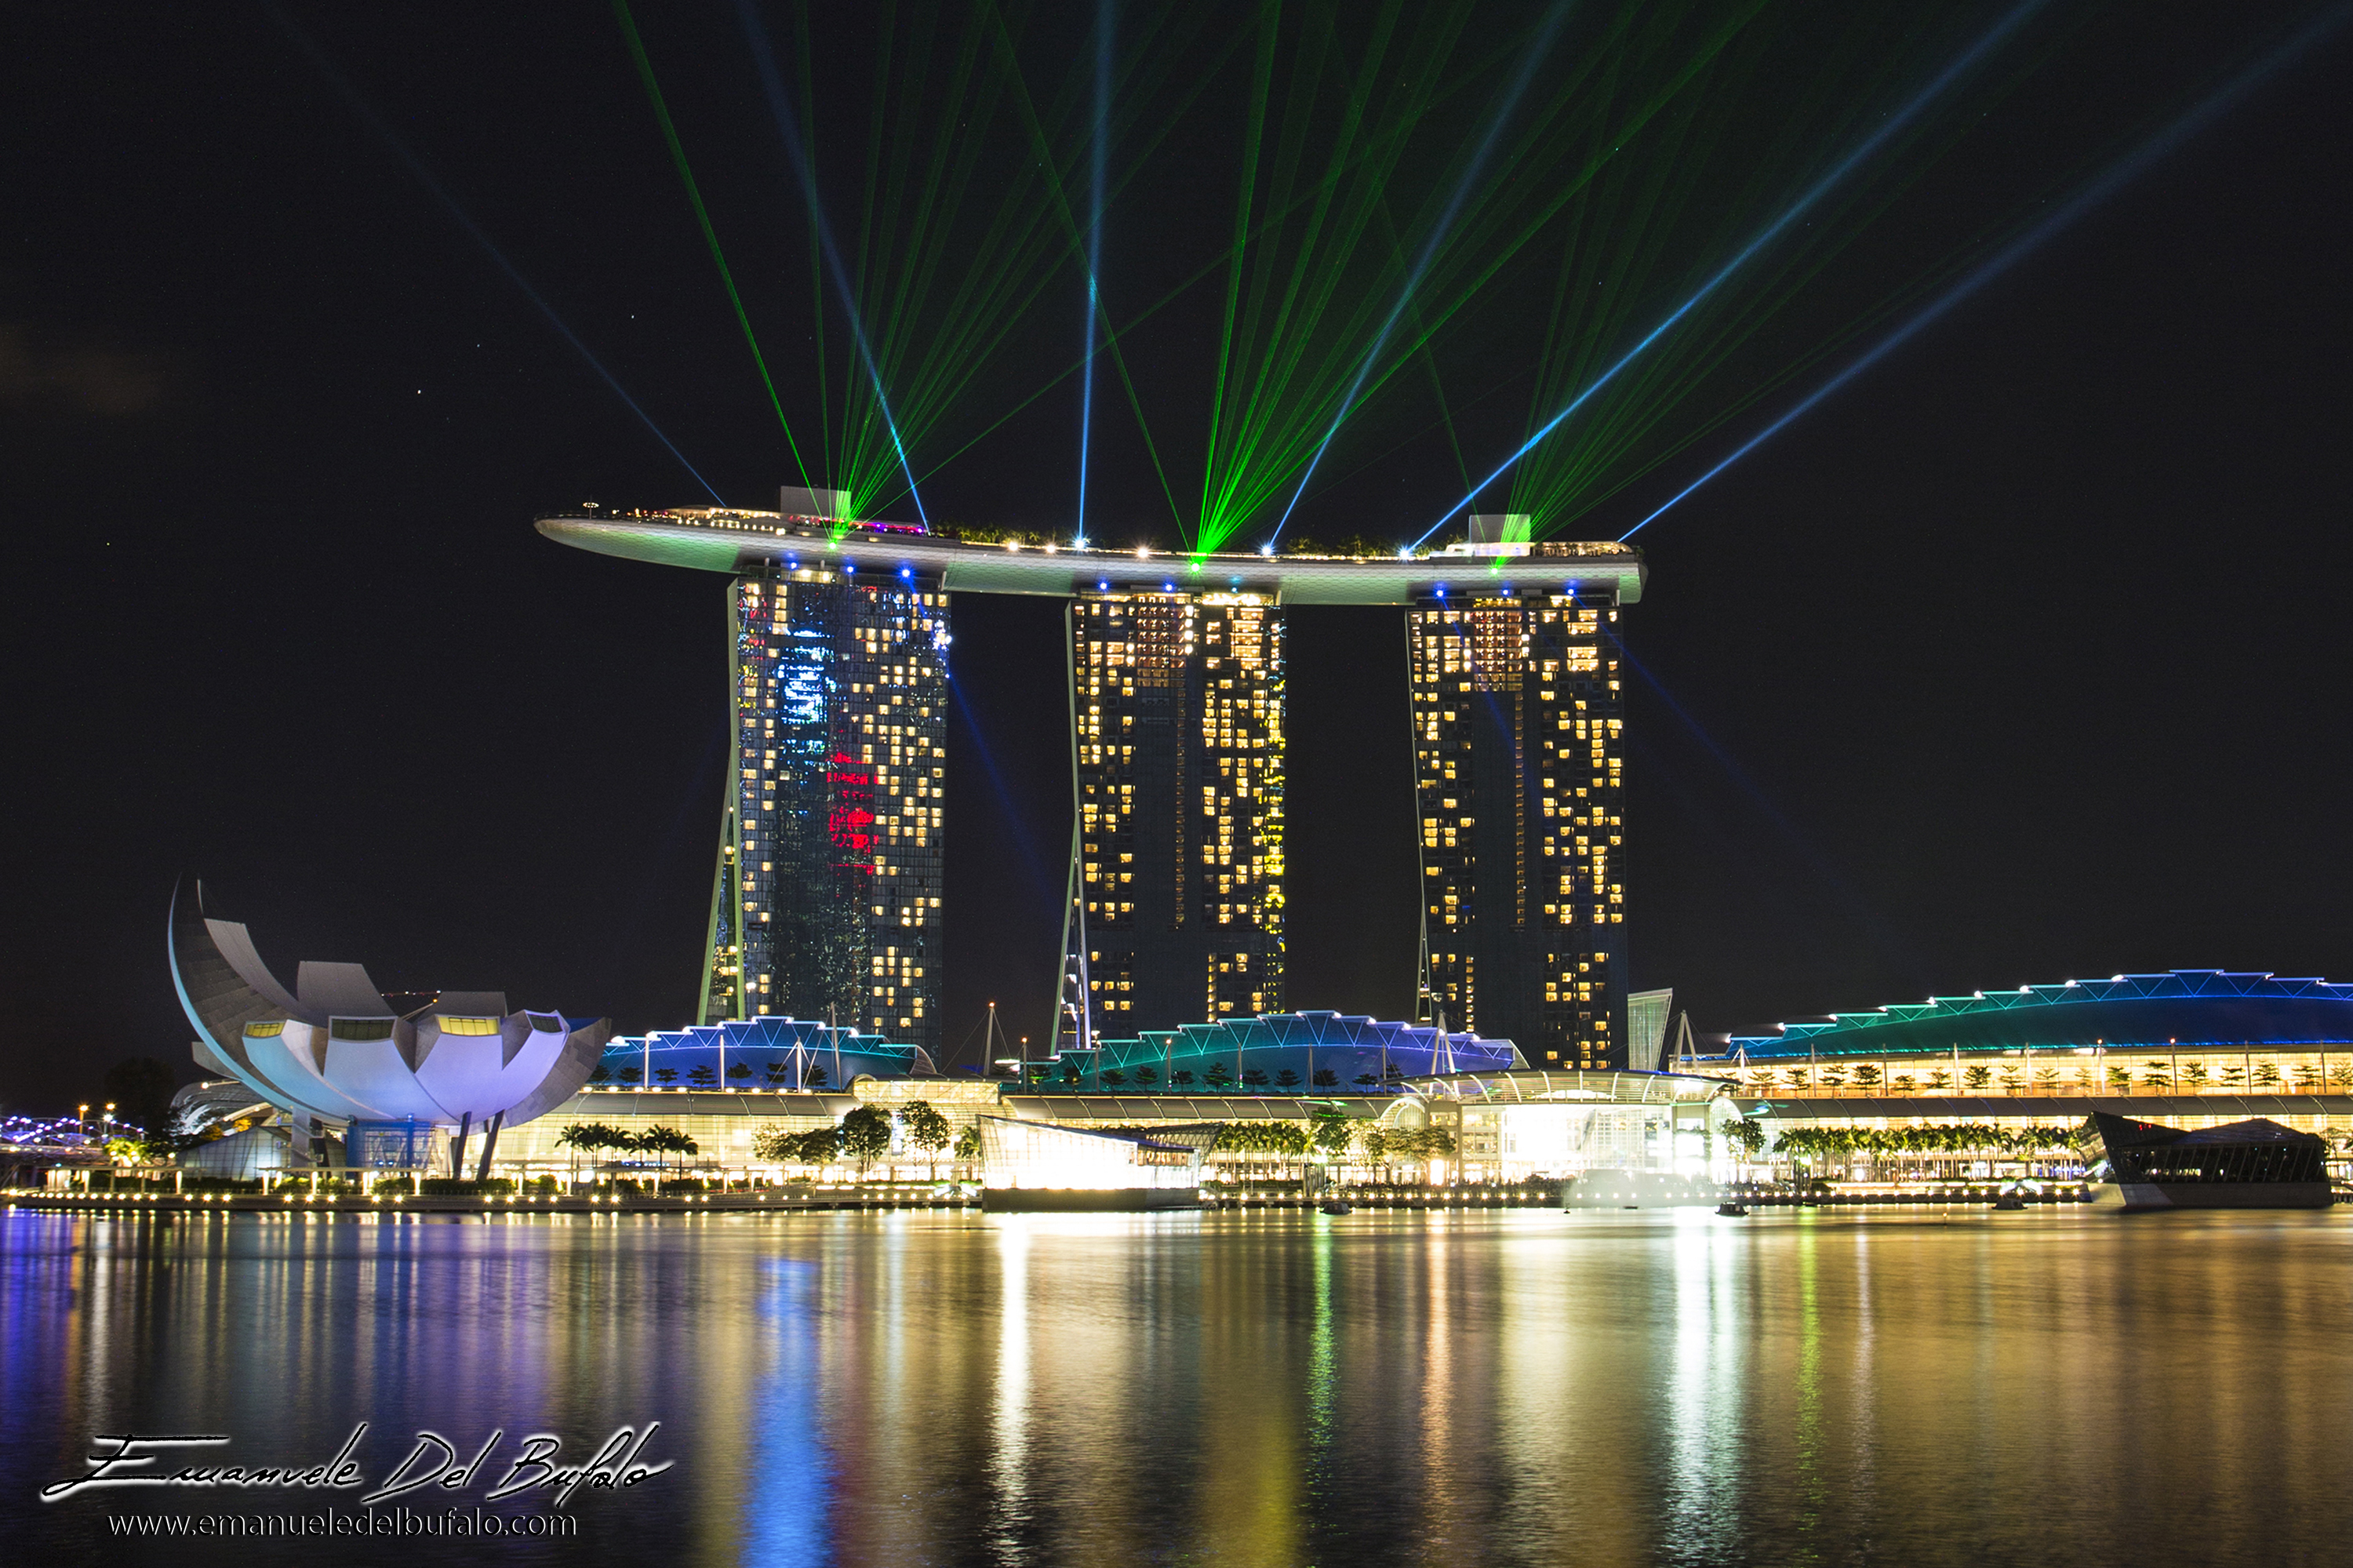 www.emanueledelbufalo.com. #singapore #marina_bay #light_show #laser #night